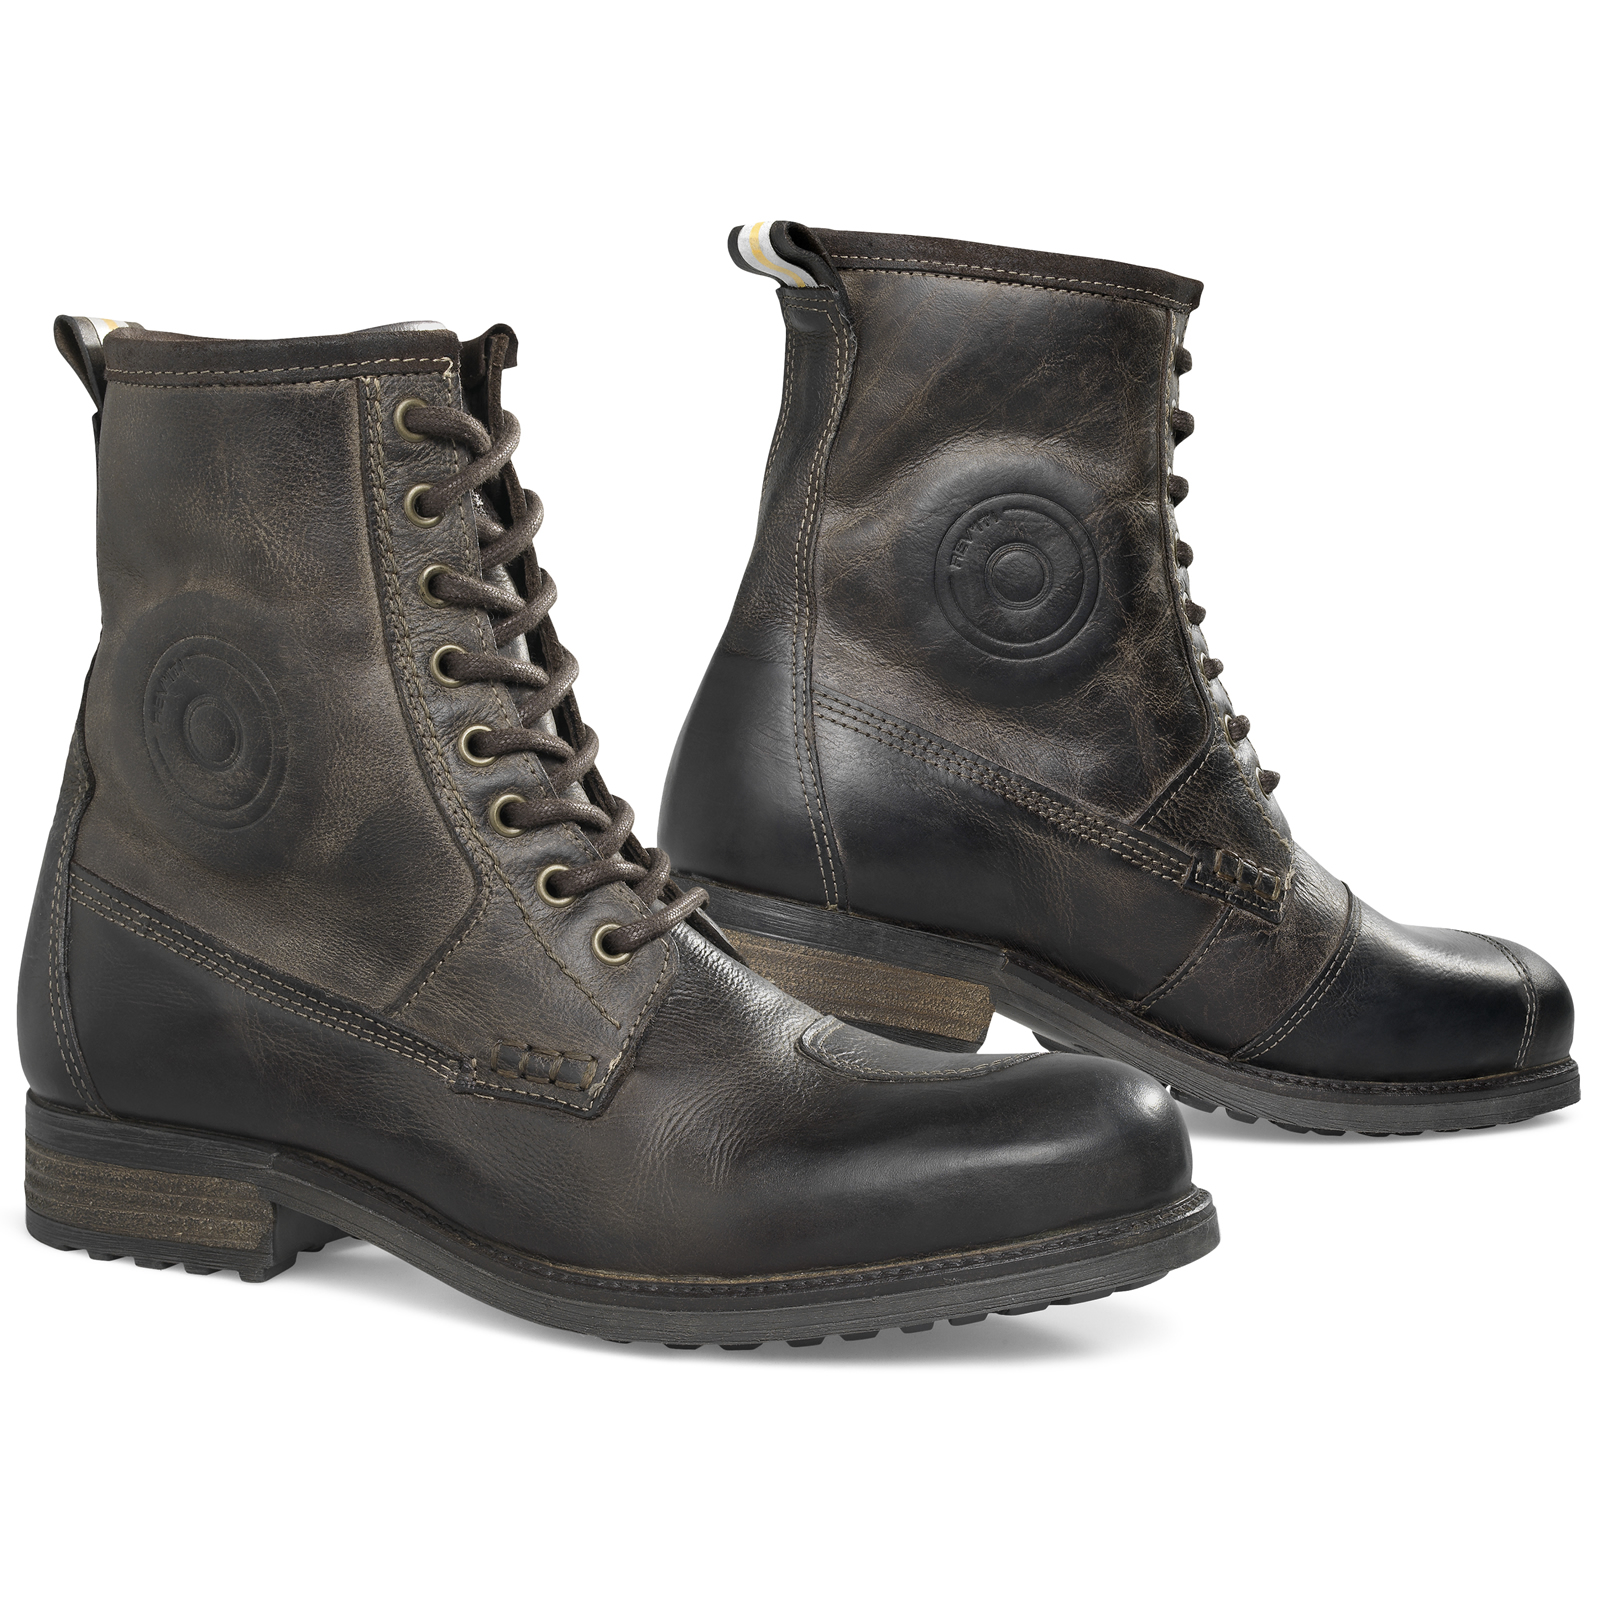 Hipster Motorcycle Boots